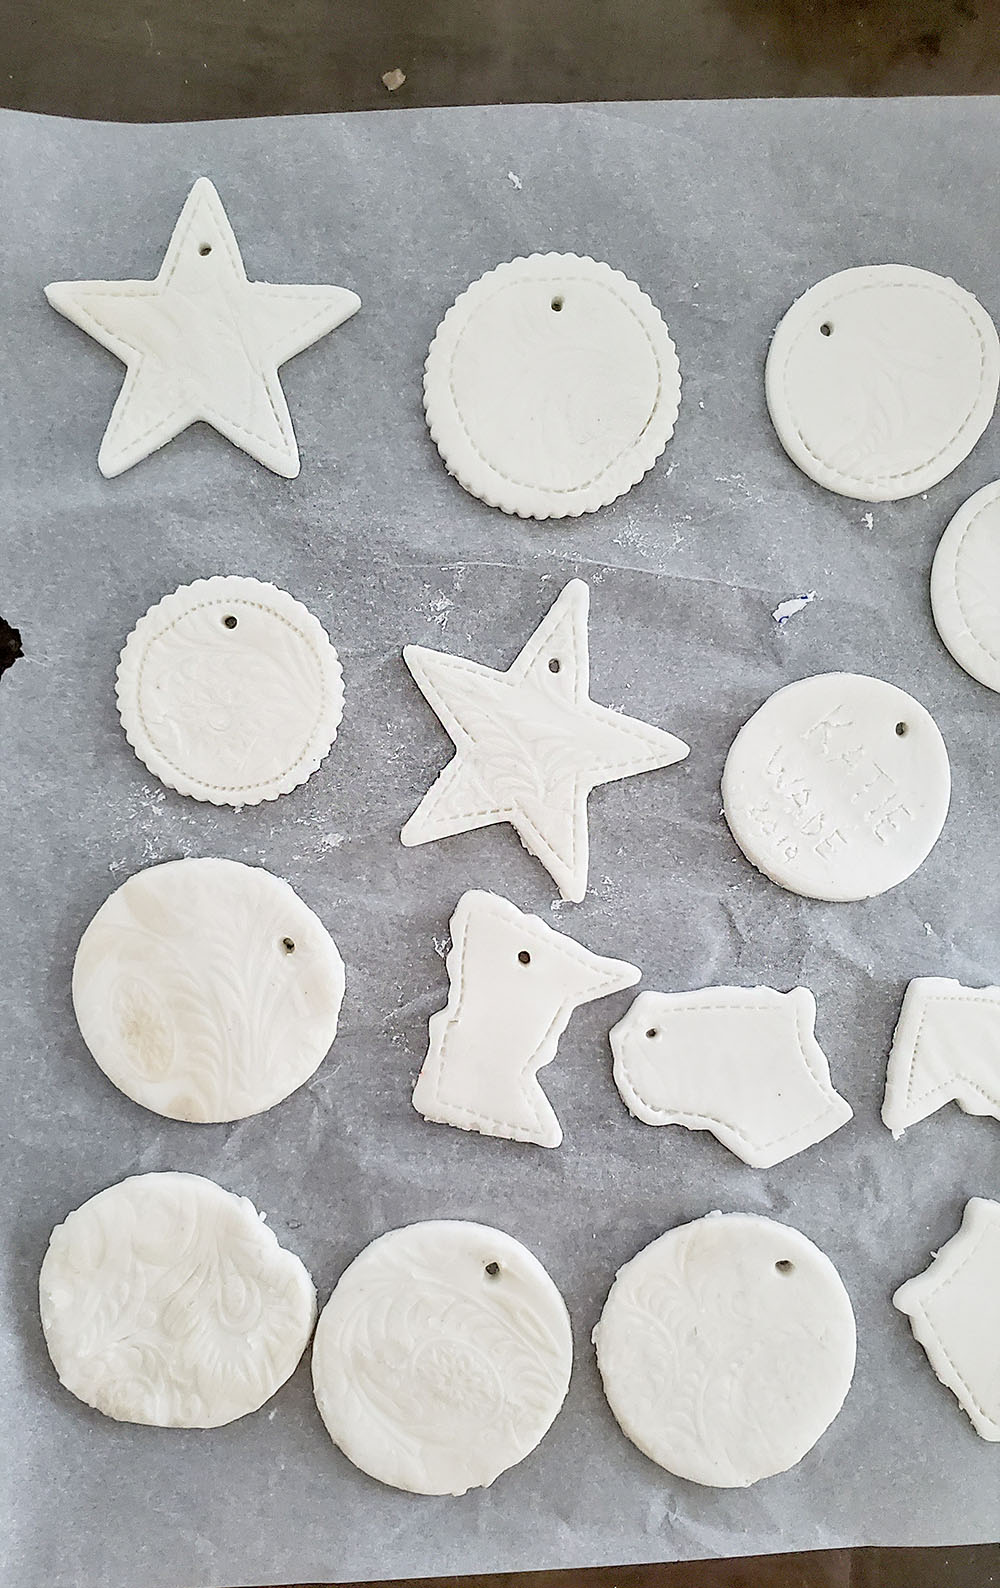 work with air dry clay in much the same way as you use sugar cookie dough